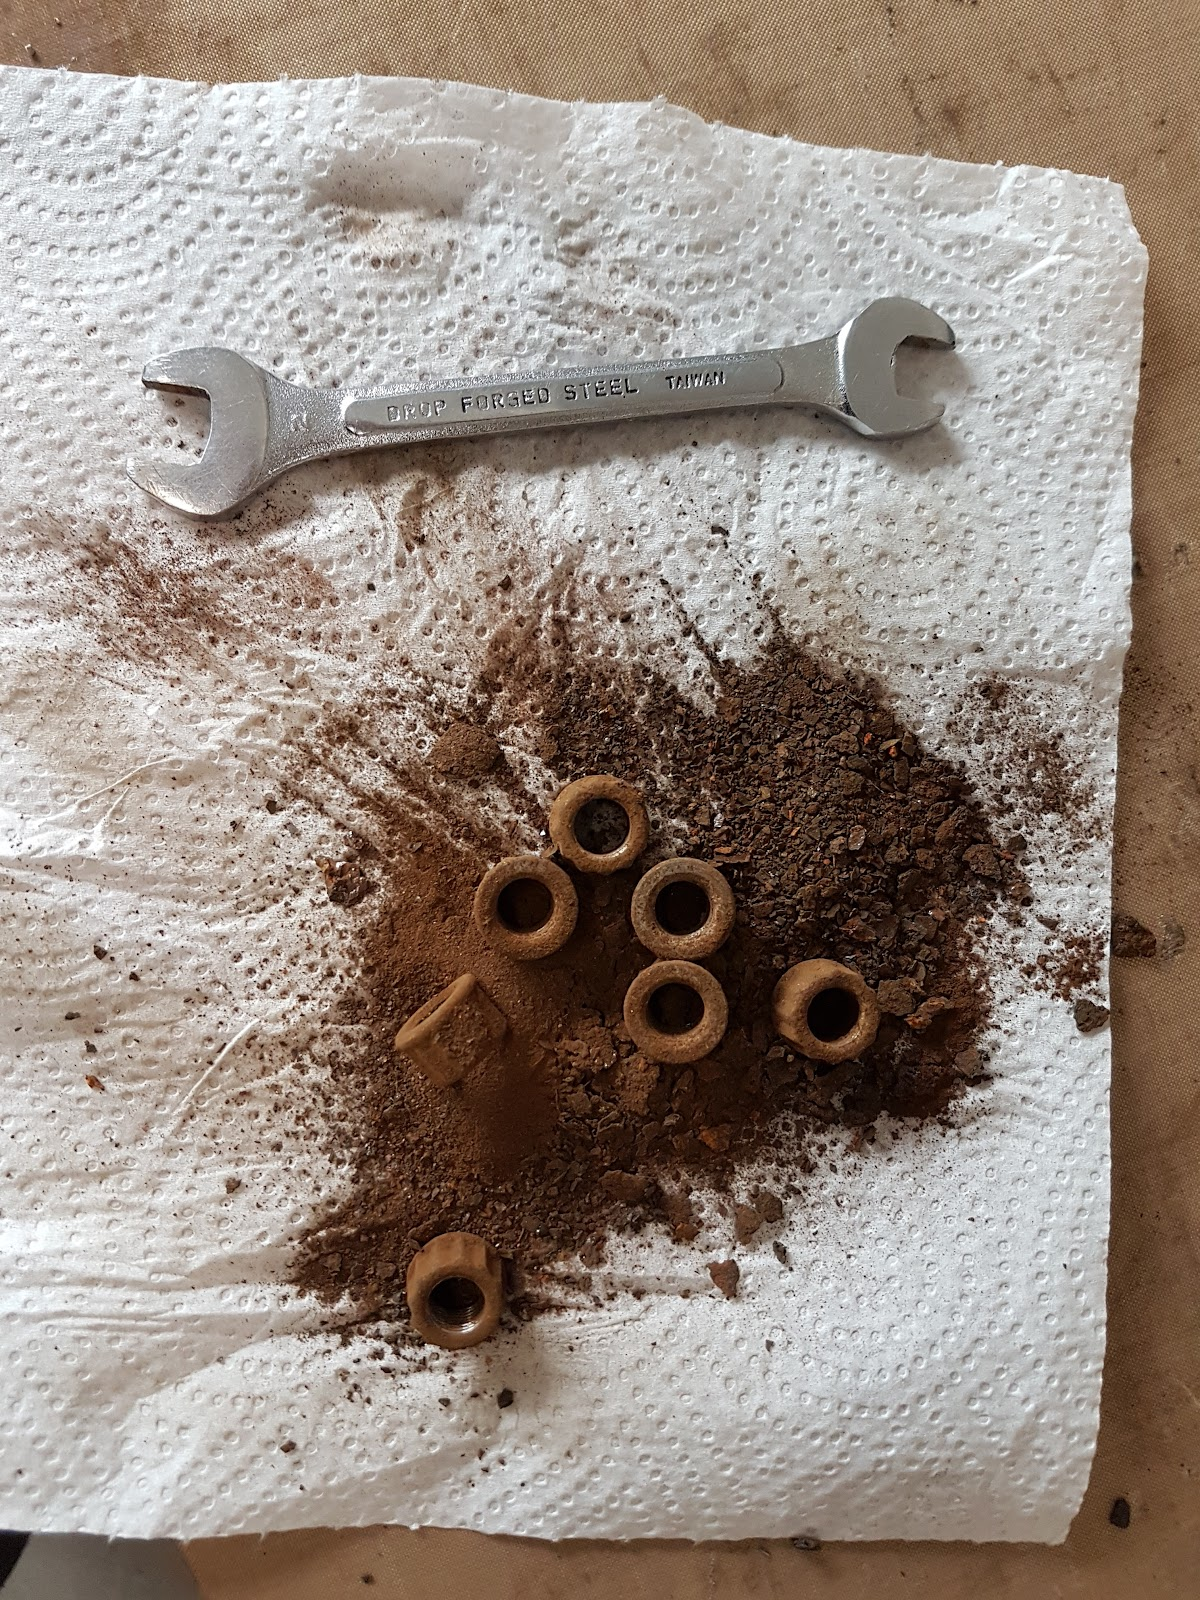 What came out of the T140's fuel tank after the nut rattling rust remover technique.